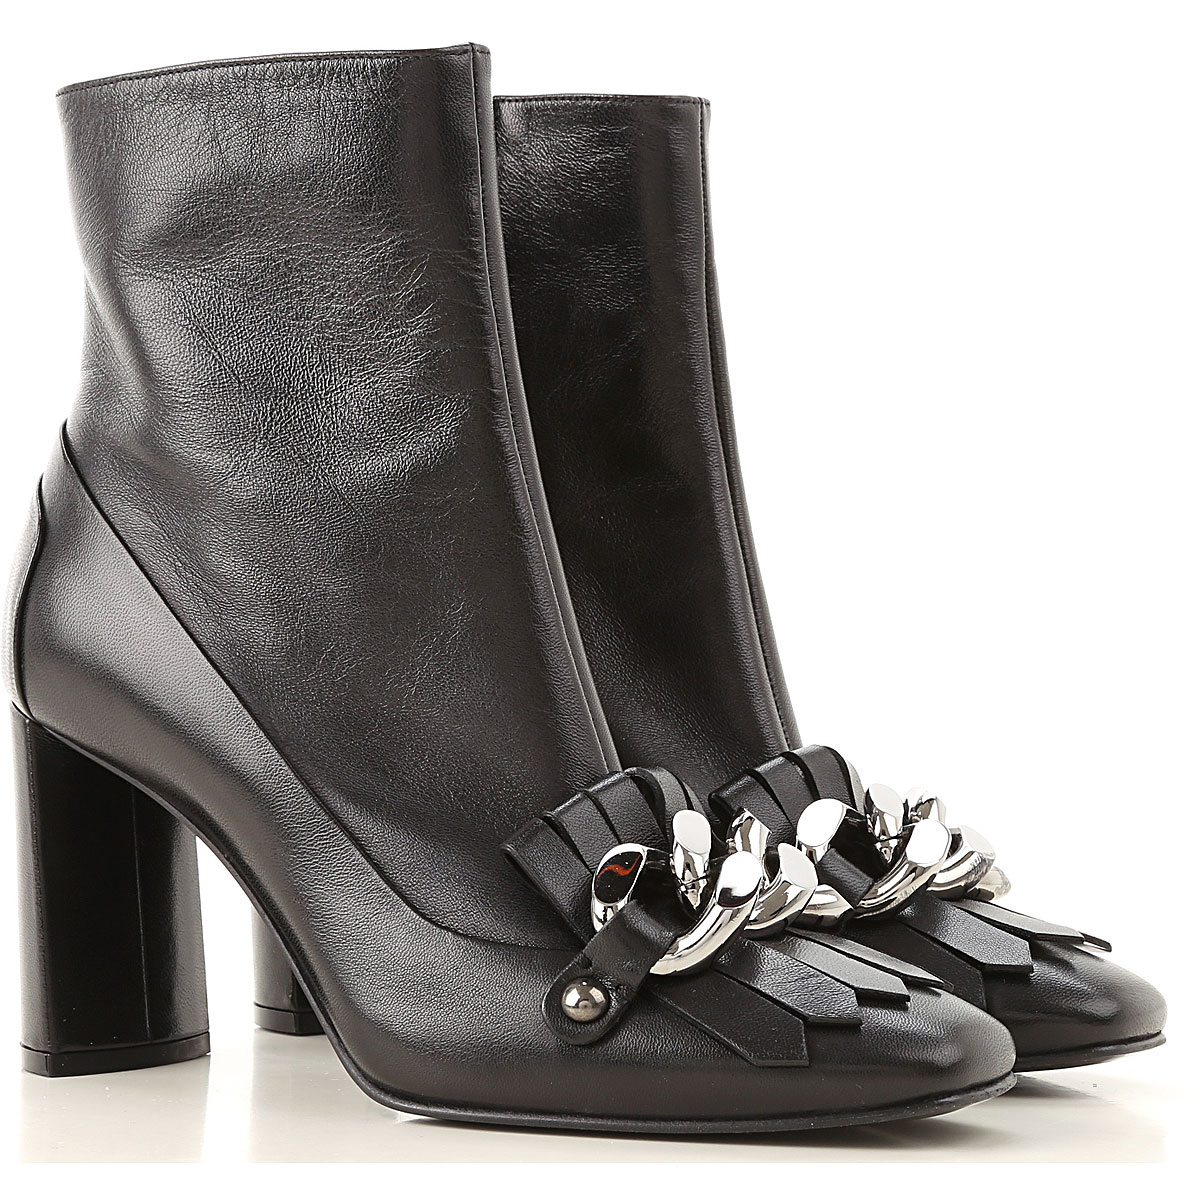 Casadei Boots for Women, Booties On Sale in Outlet, Black, Leather, 2019, 6